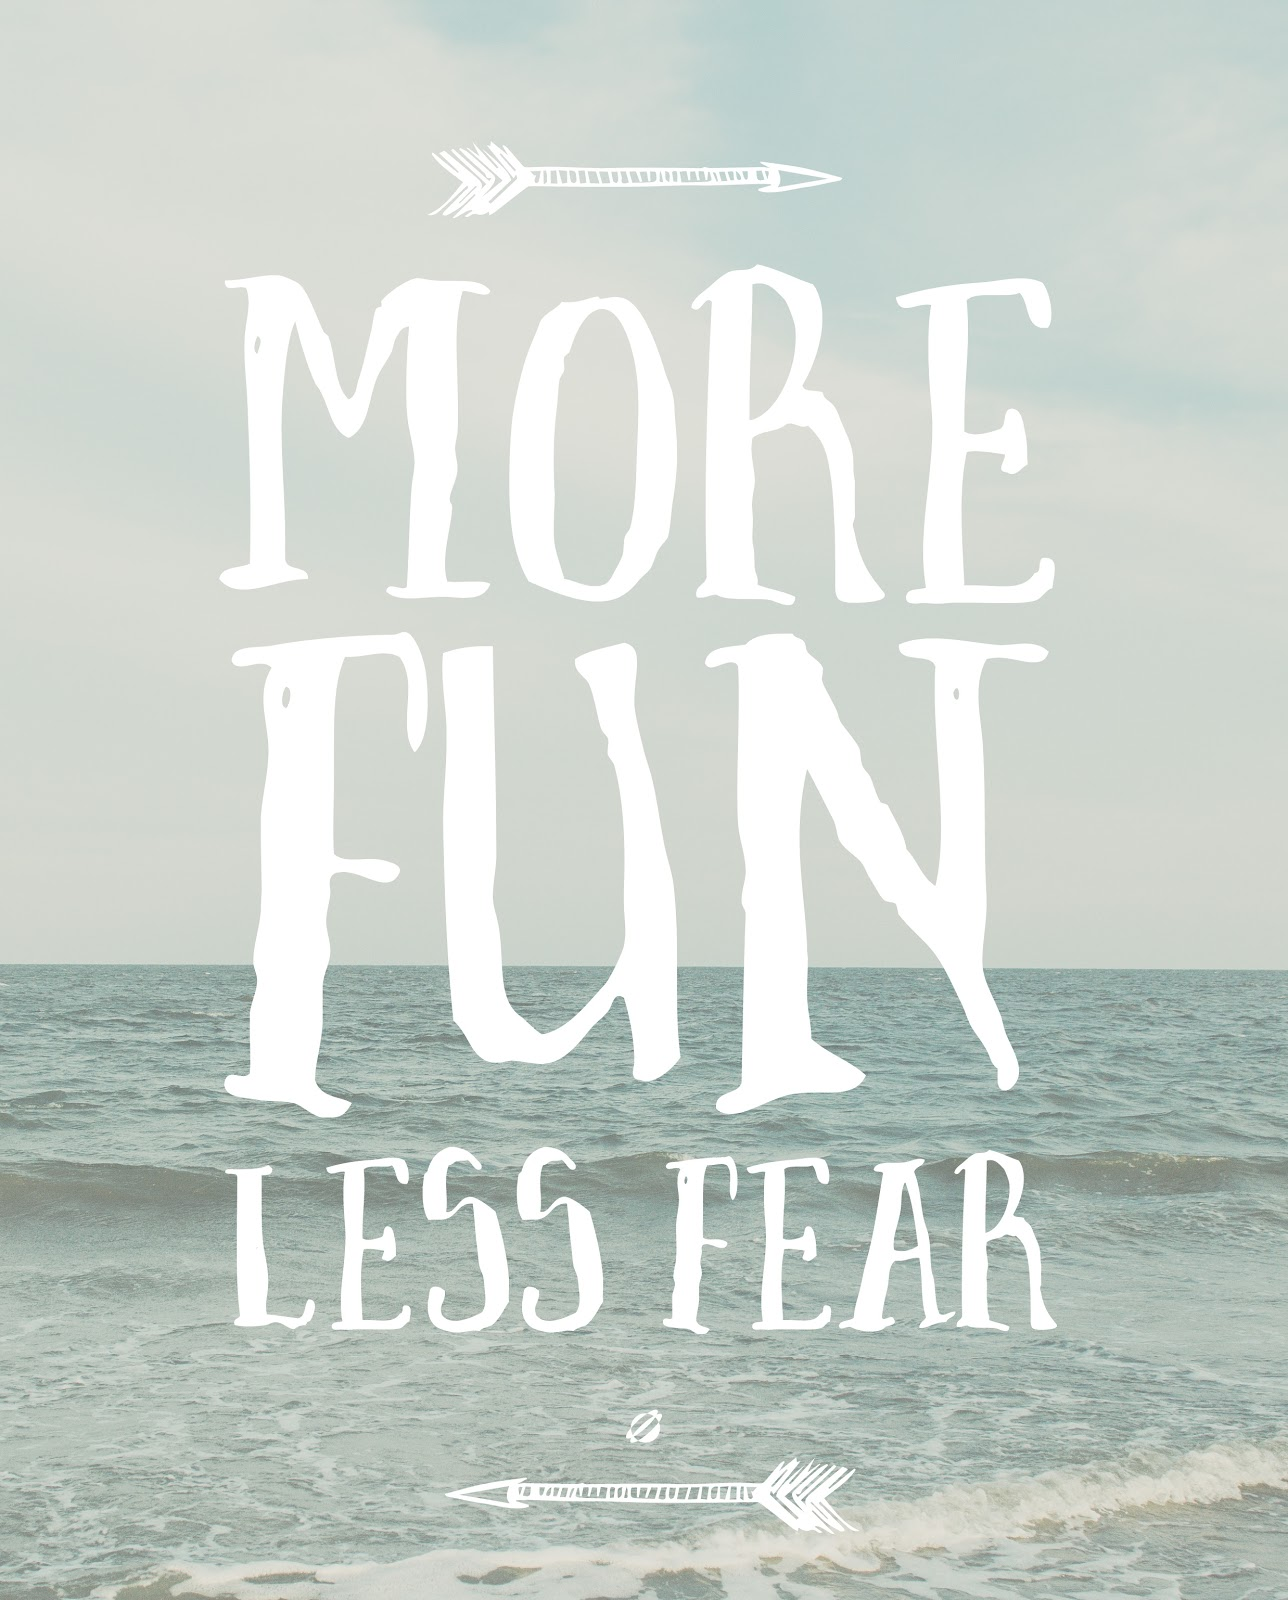 LostBumblebee ©2015 Free Printable : More FUN LESS FEAR : Personal use only.